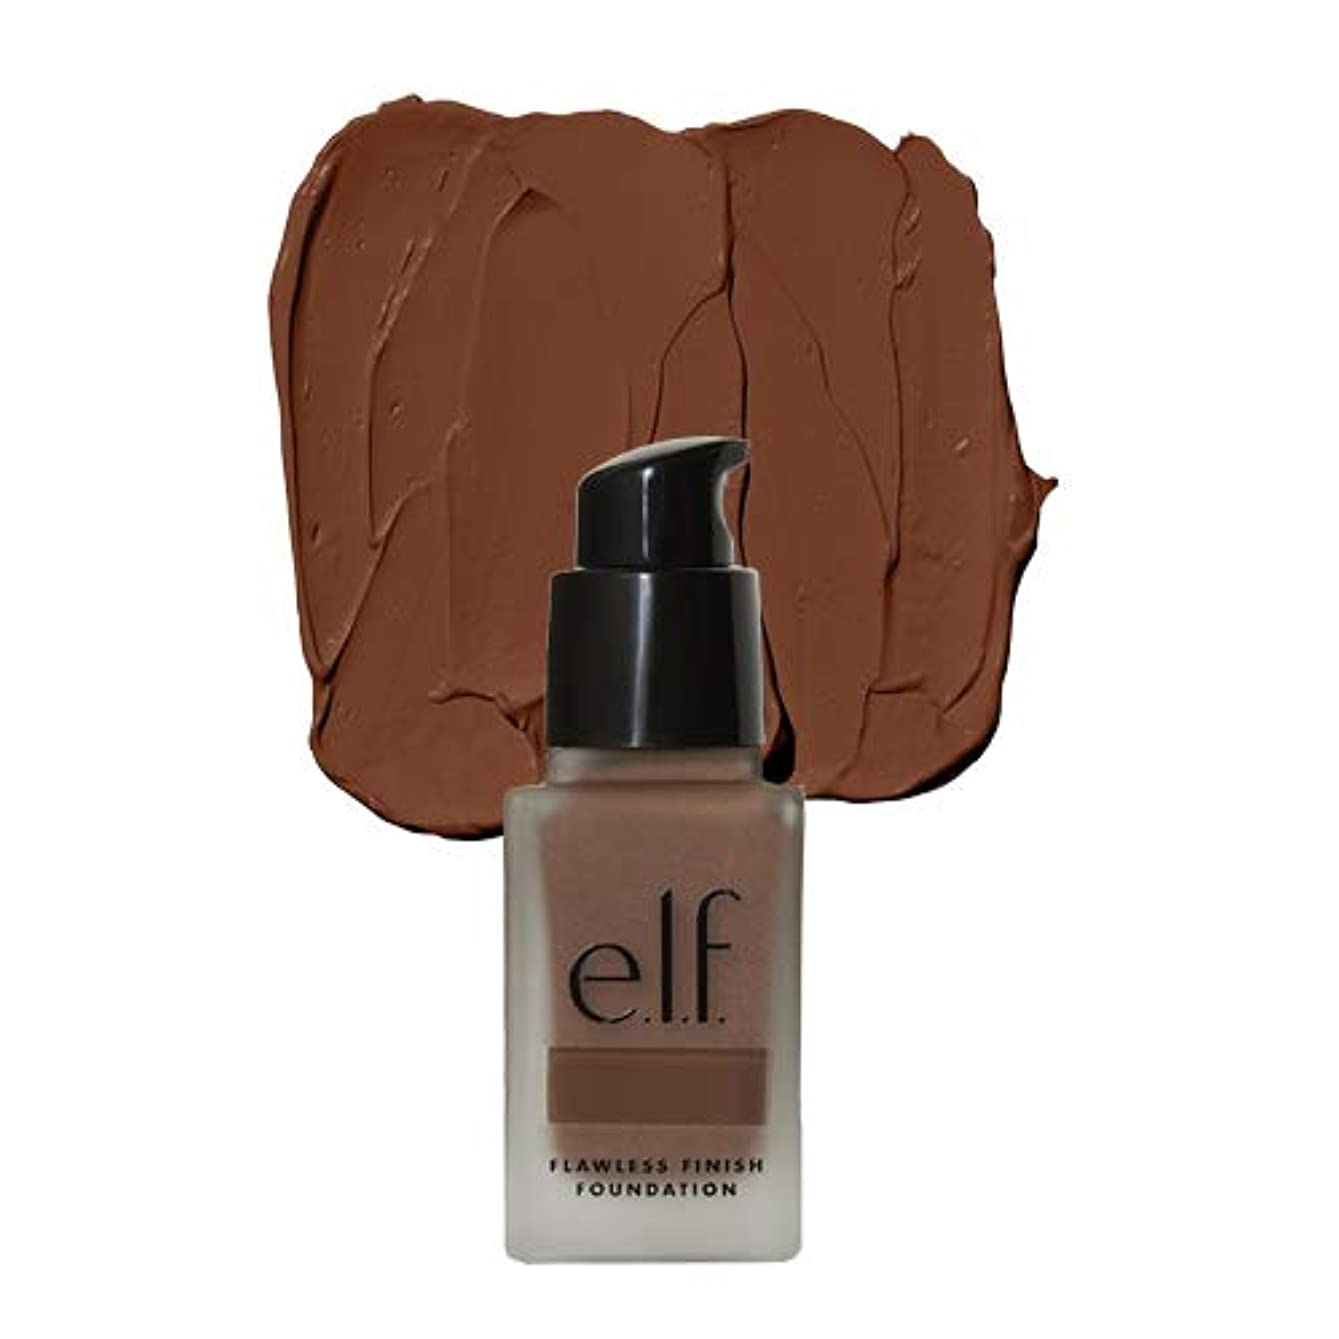 毒液無限大トムオードリース(3 Pack) e.l.f. Oil Free Flawless Finish Foundation - Mocha (並行輸入品)